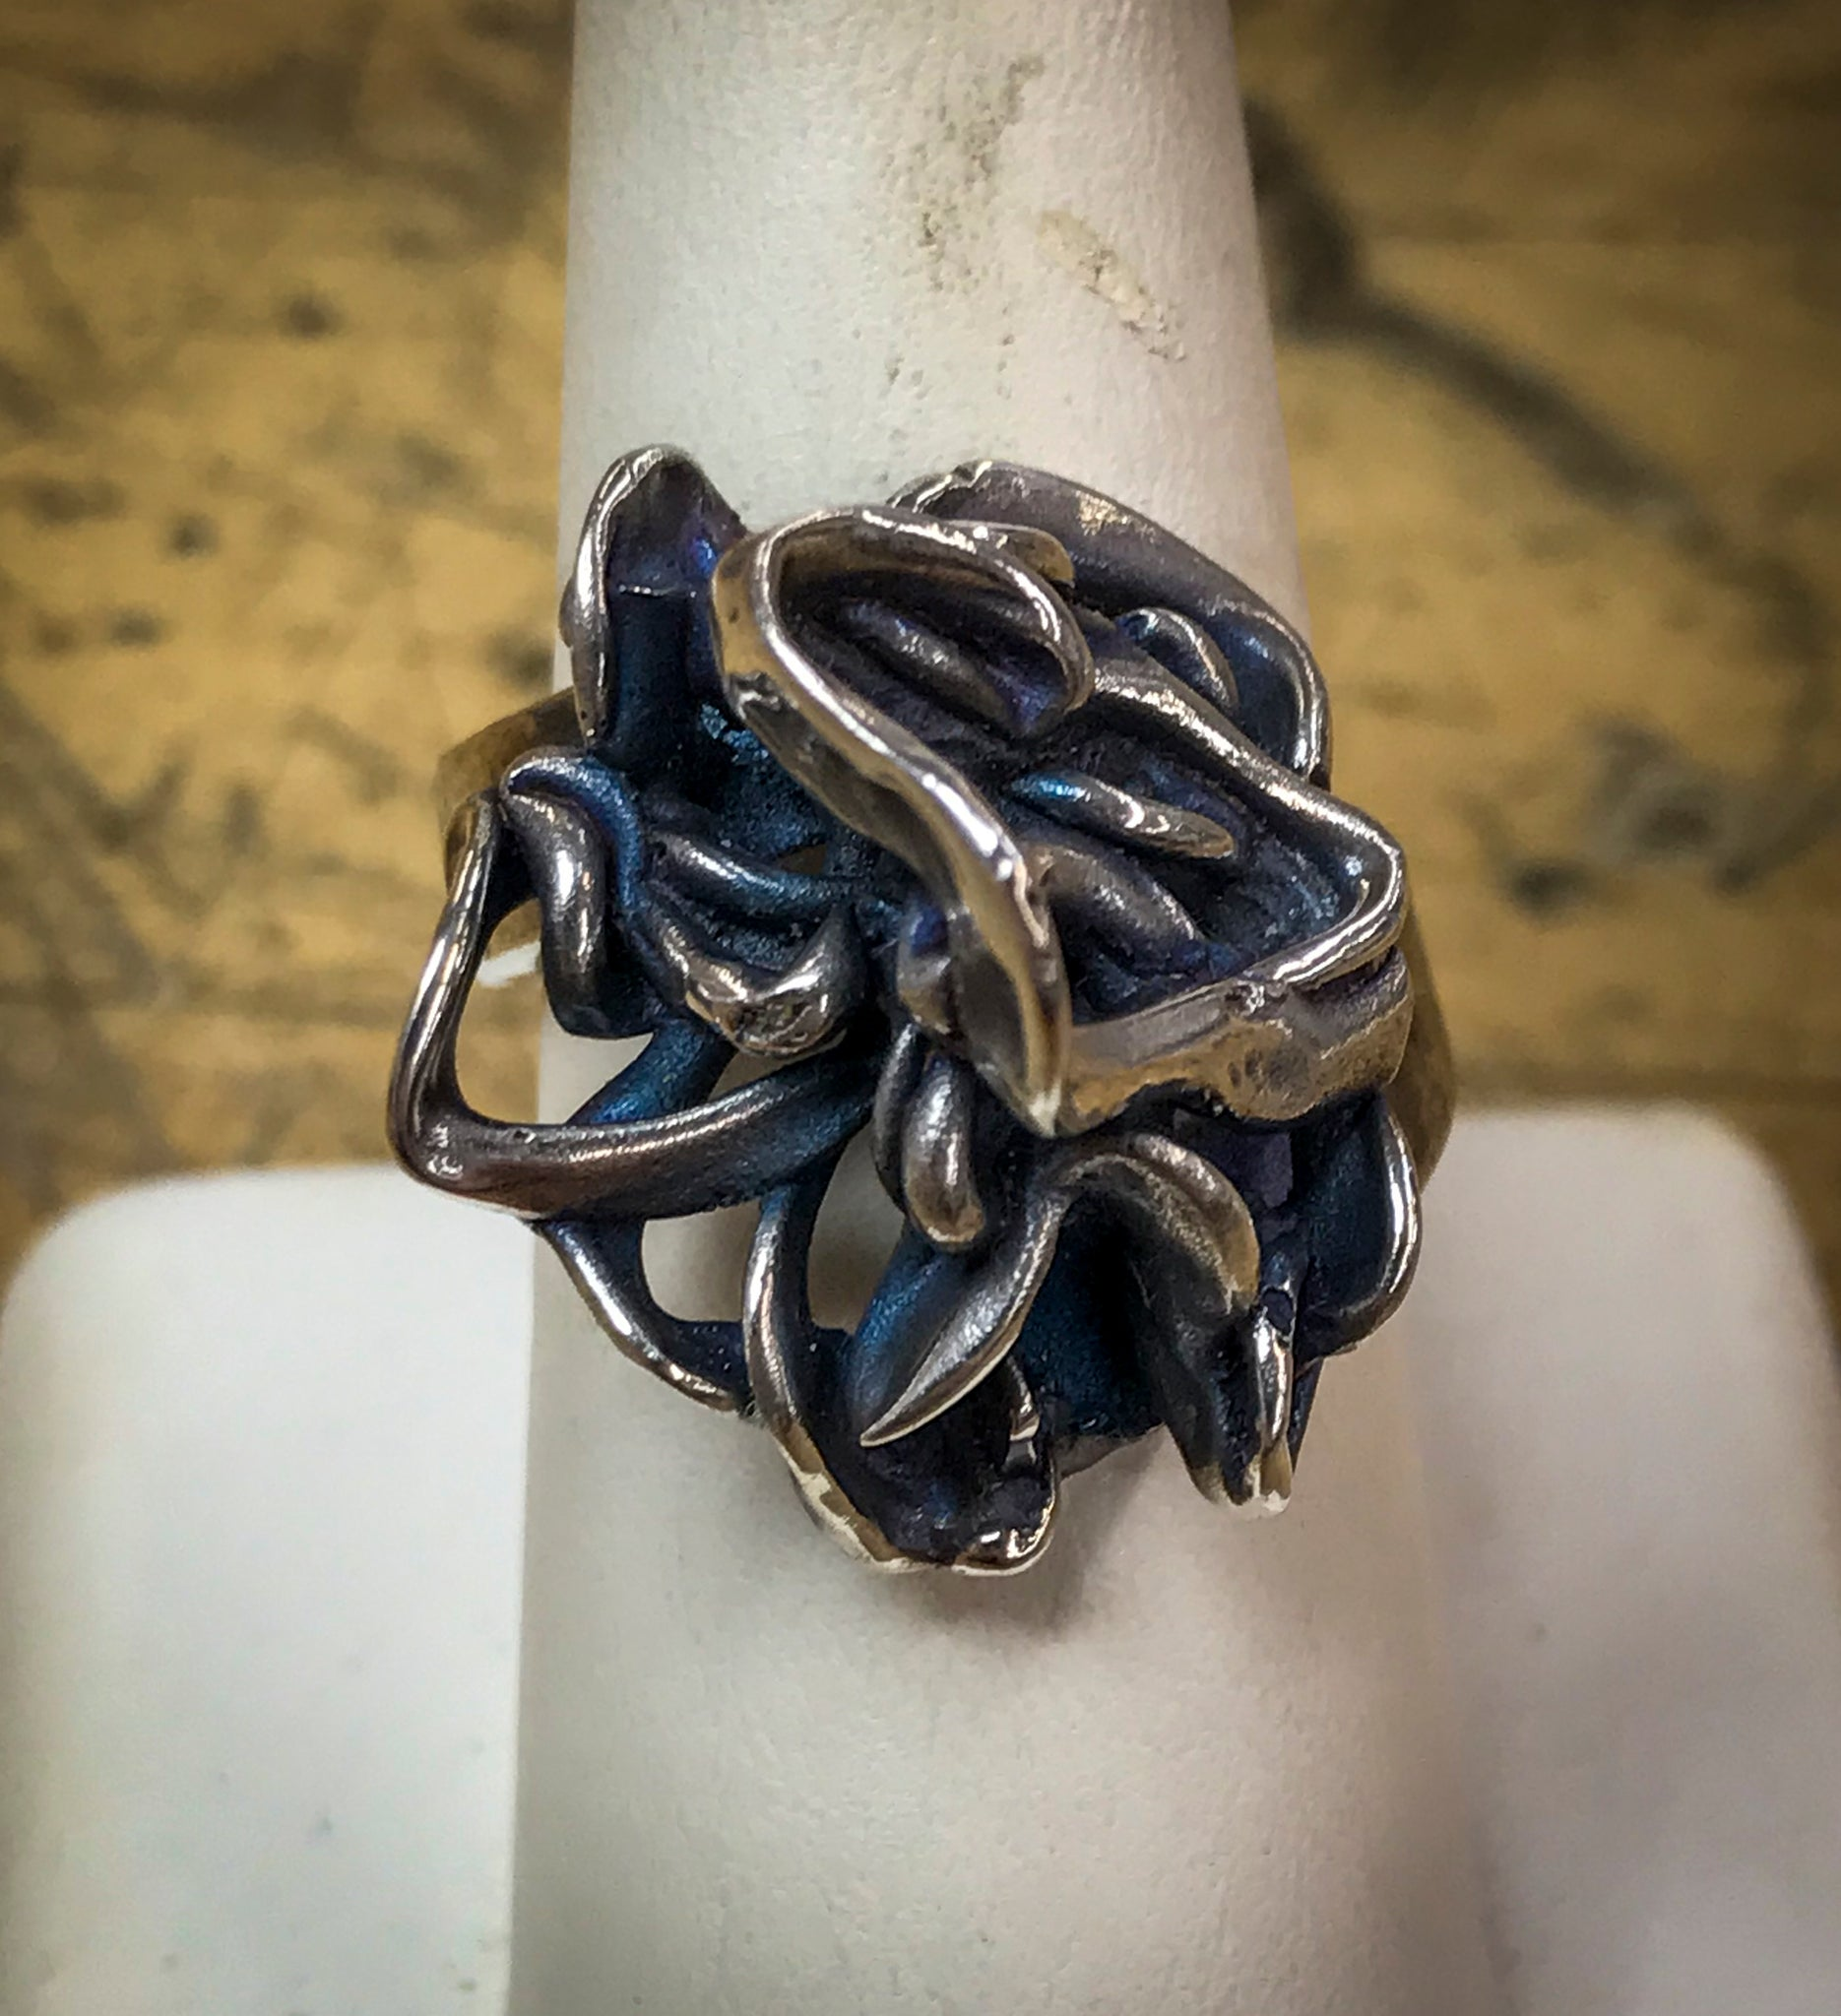 Freeform Cast Ring - Medium design